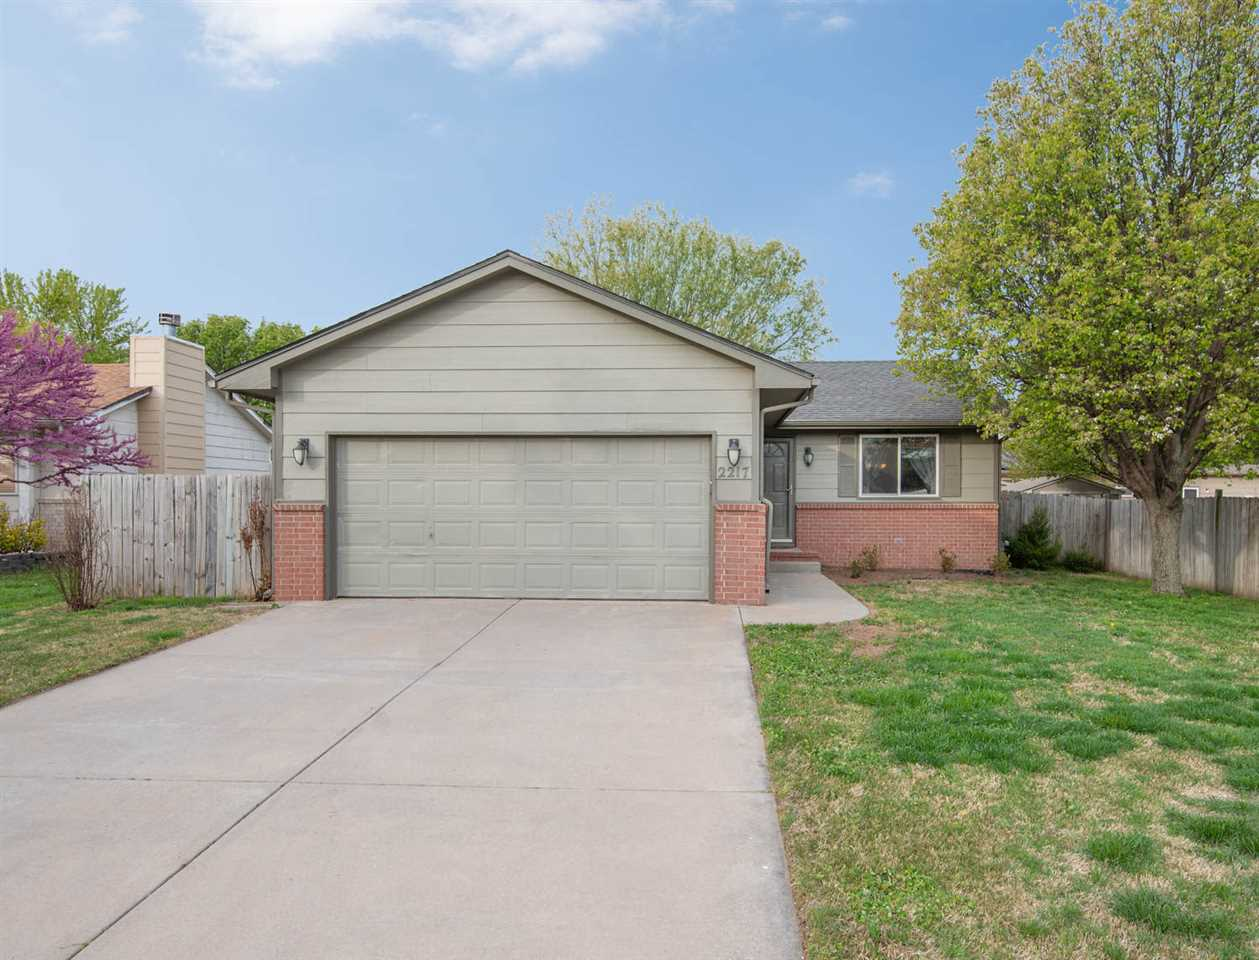 3 BED 2 BATH RANCH HOME IN THE GODDARD SCHOOL DISTRICT THAT'S MOVE IN READY FOR YOU TODAY!  WALK INT